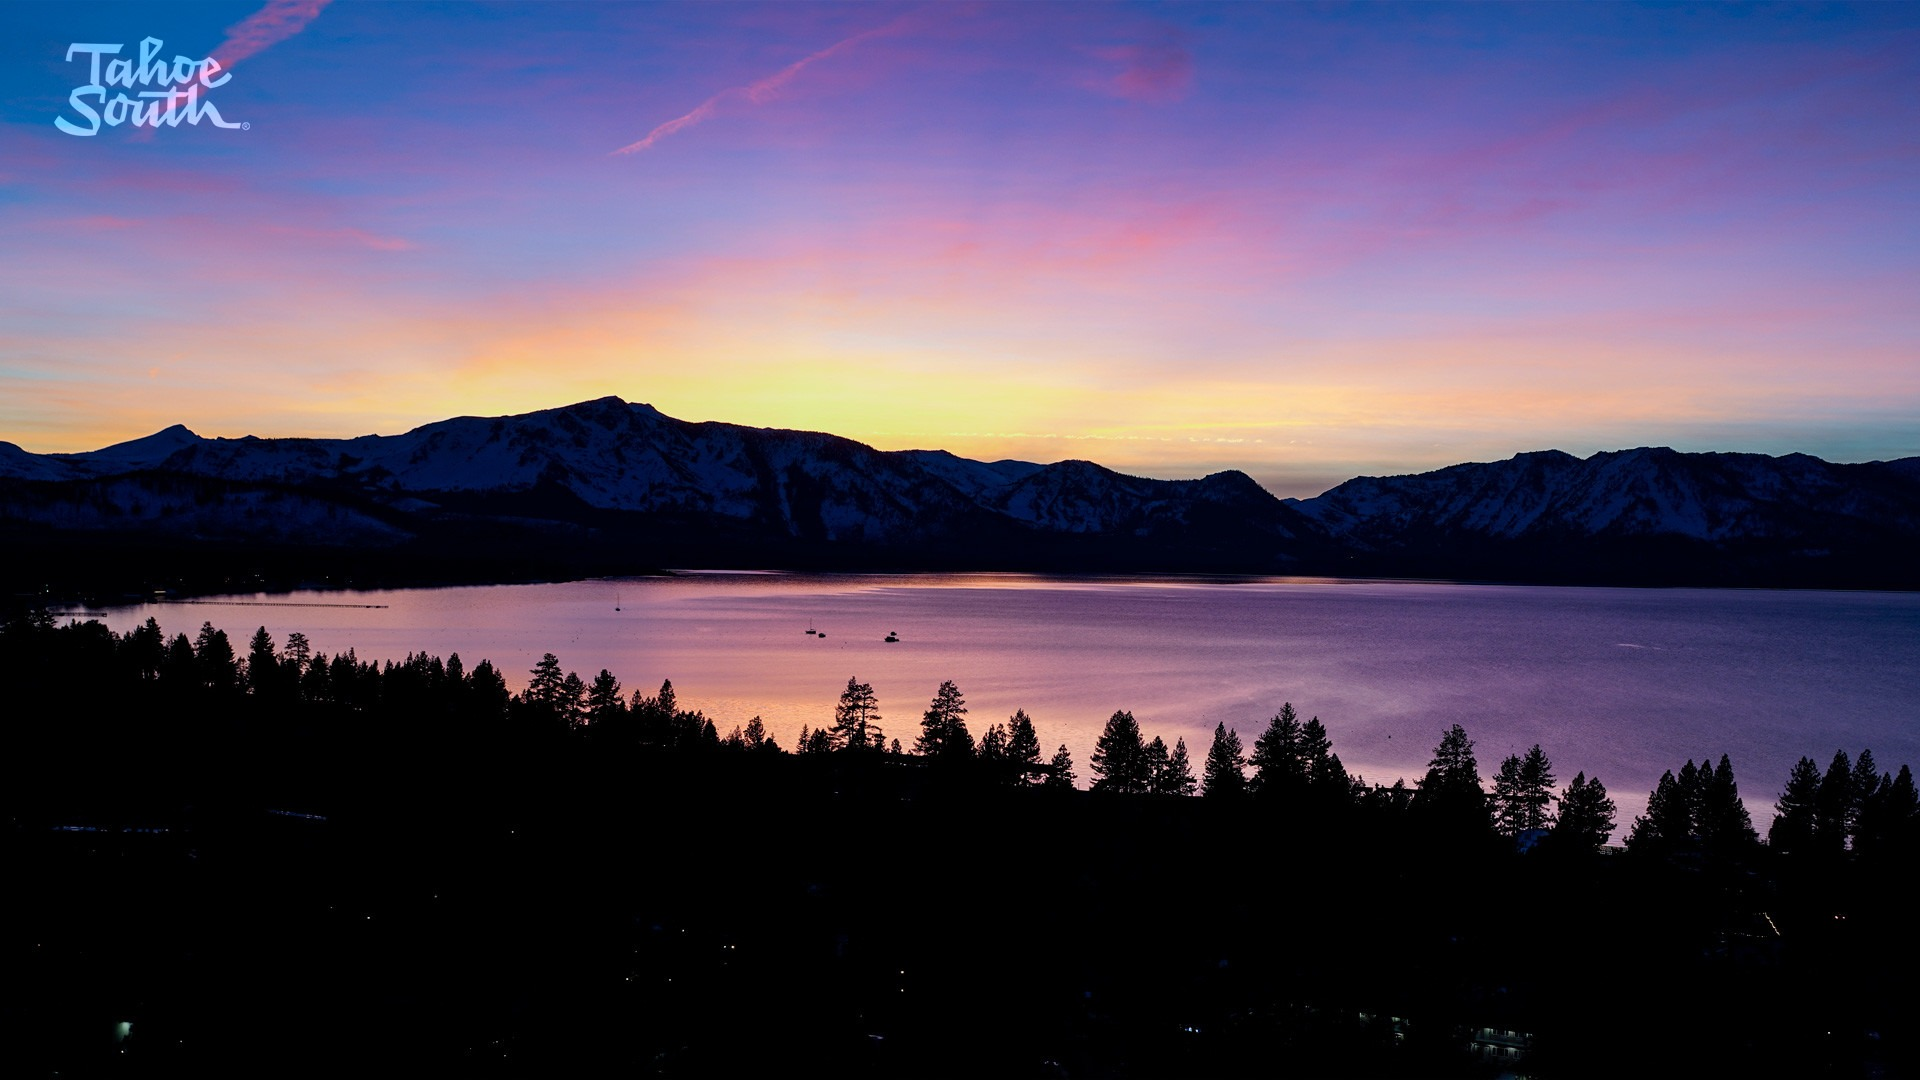 Sunset in Lake Tahoe overlooking lake and Mt Tallac